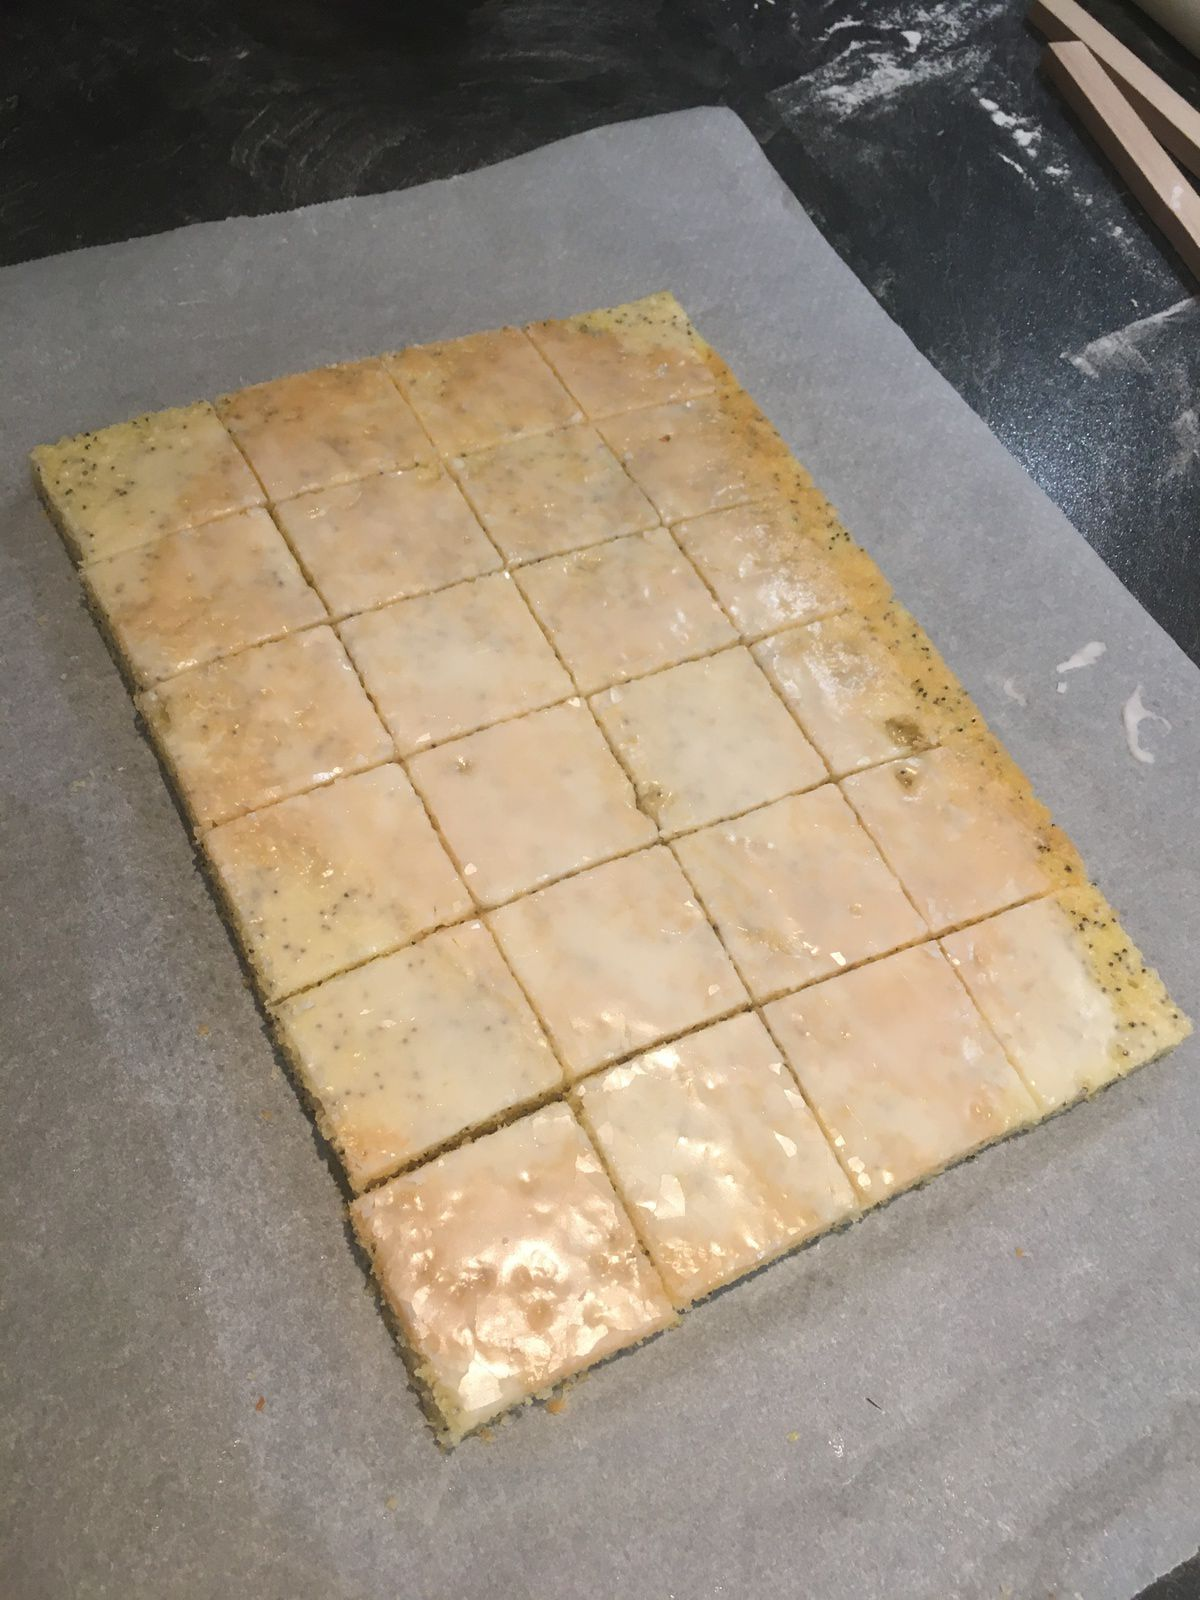 Les blondies au citron